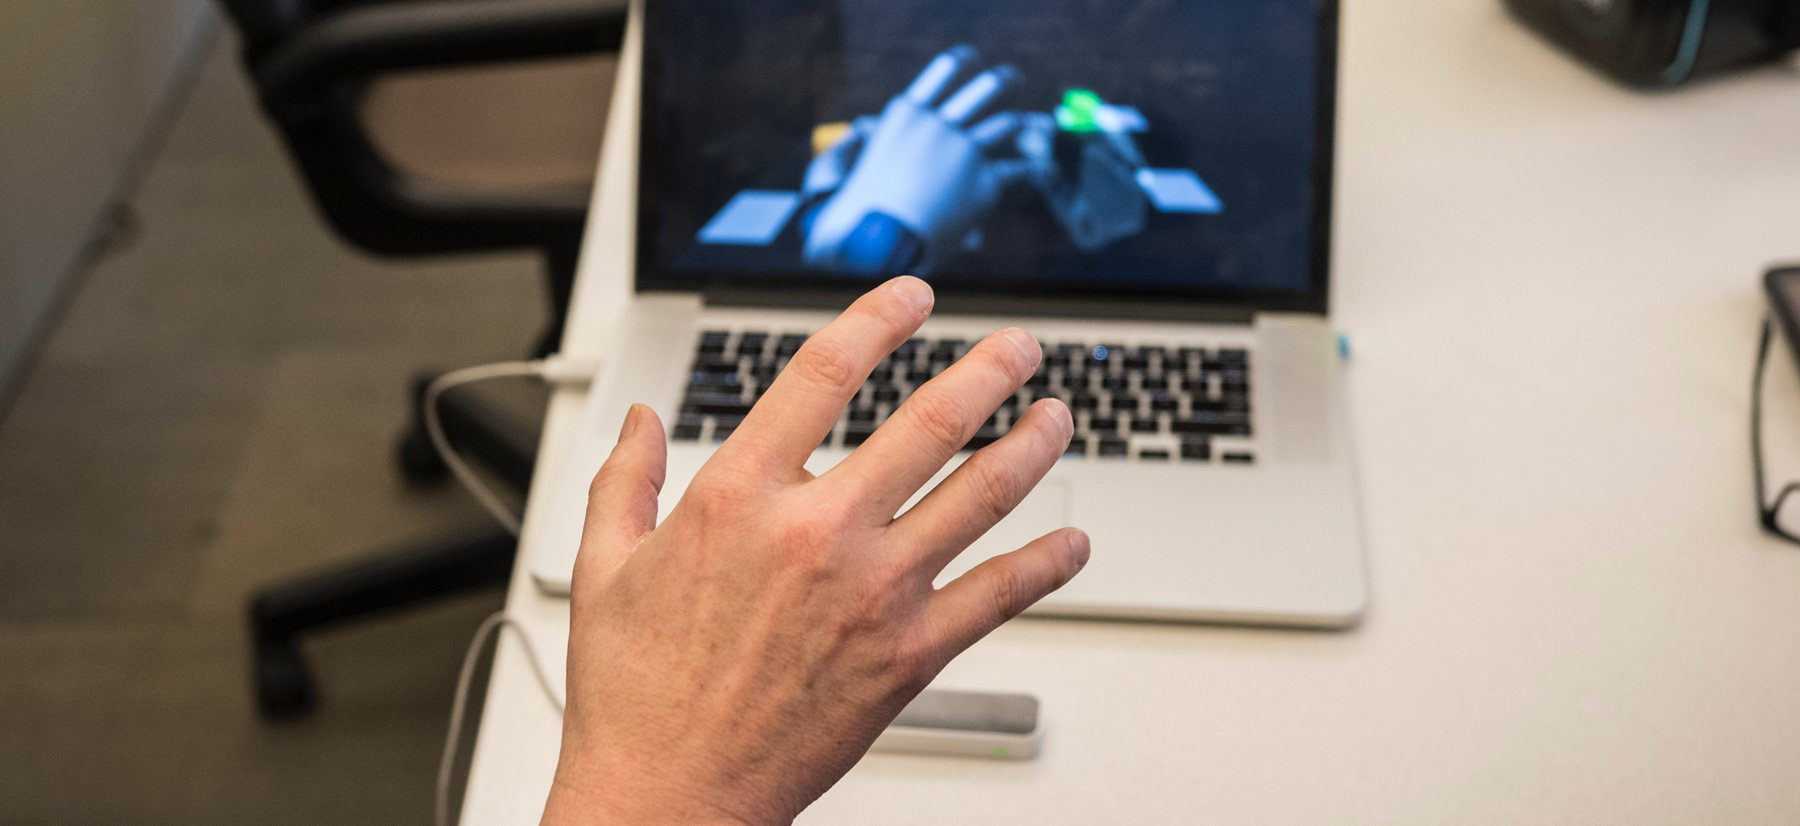 A person reaches out in front of a laptop using peripheral to interface with a computer.